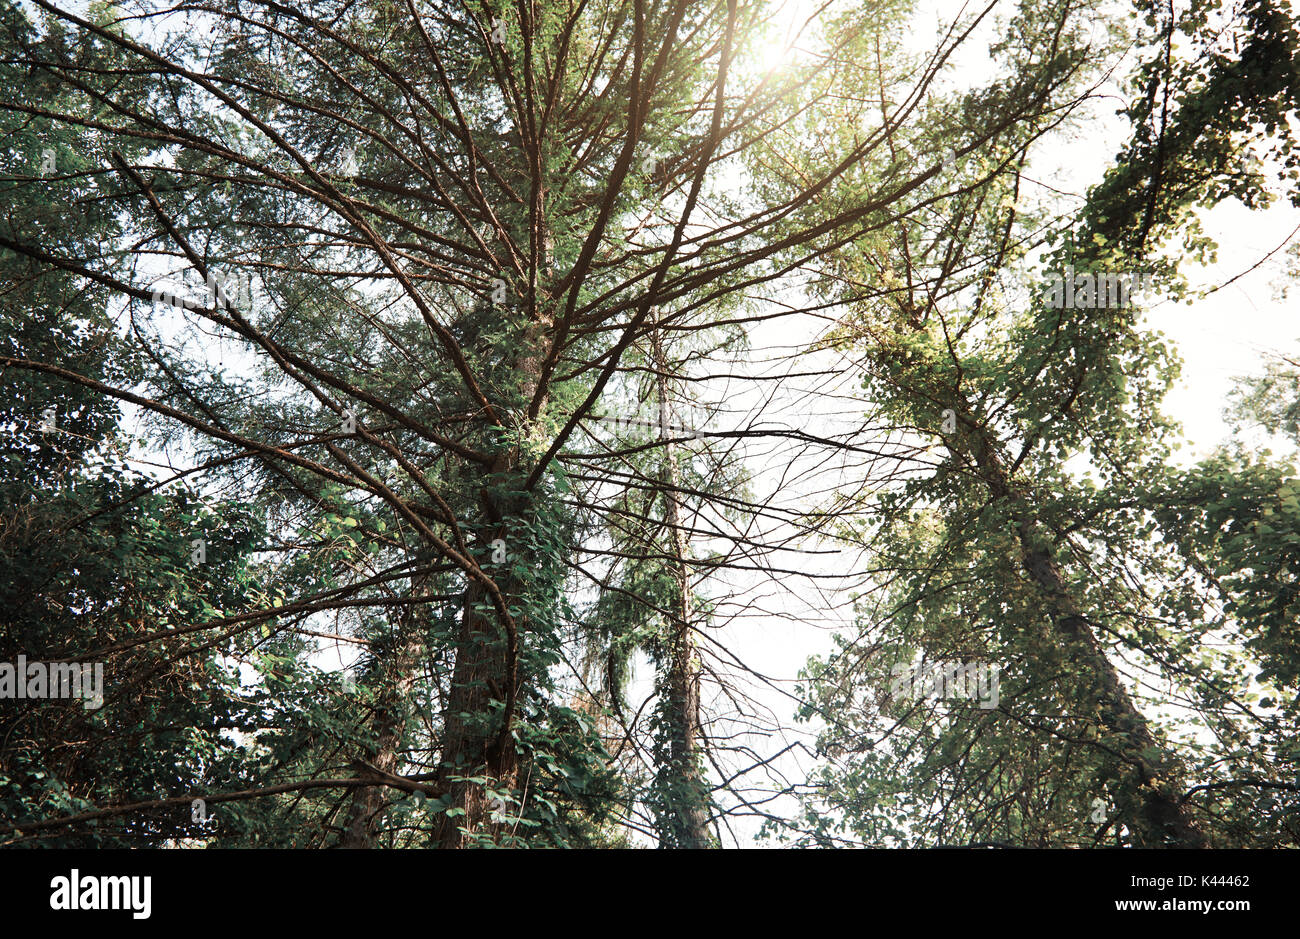 Pines in a wild forest. Horizontal photo Stock Photo